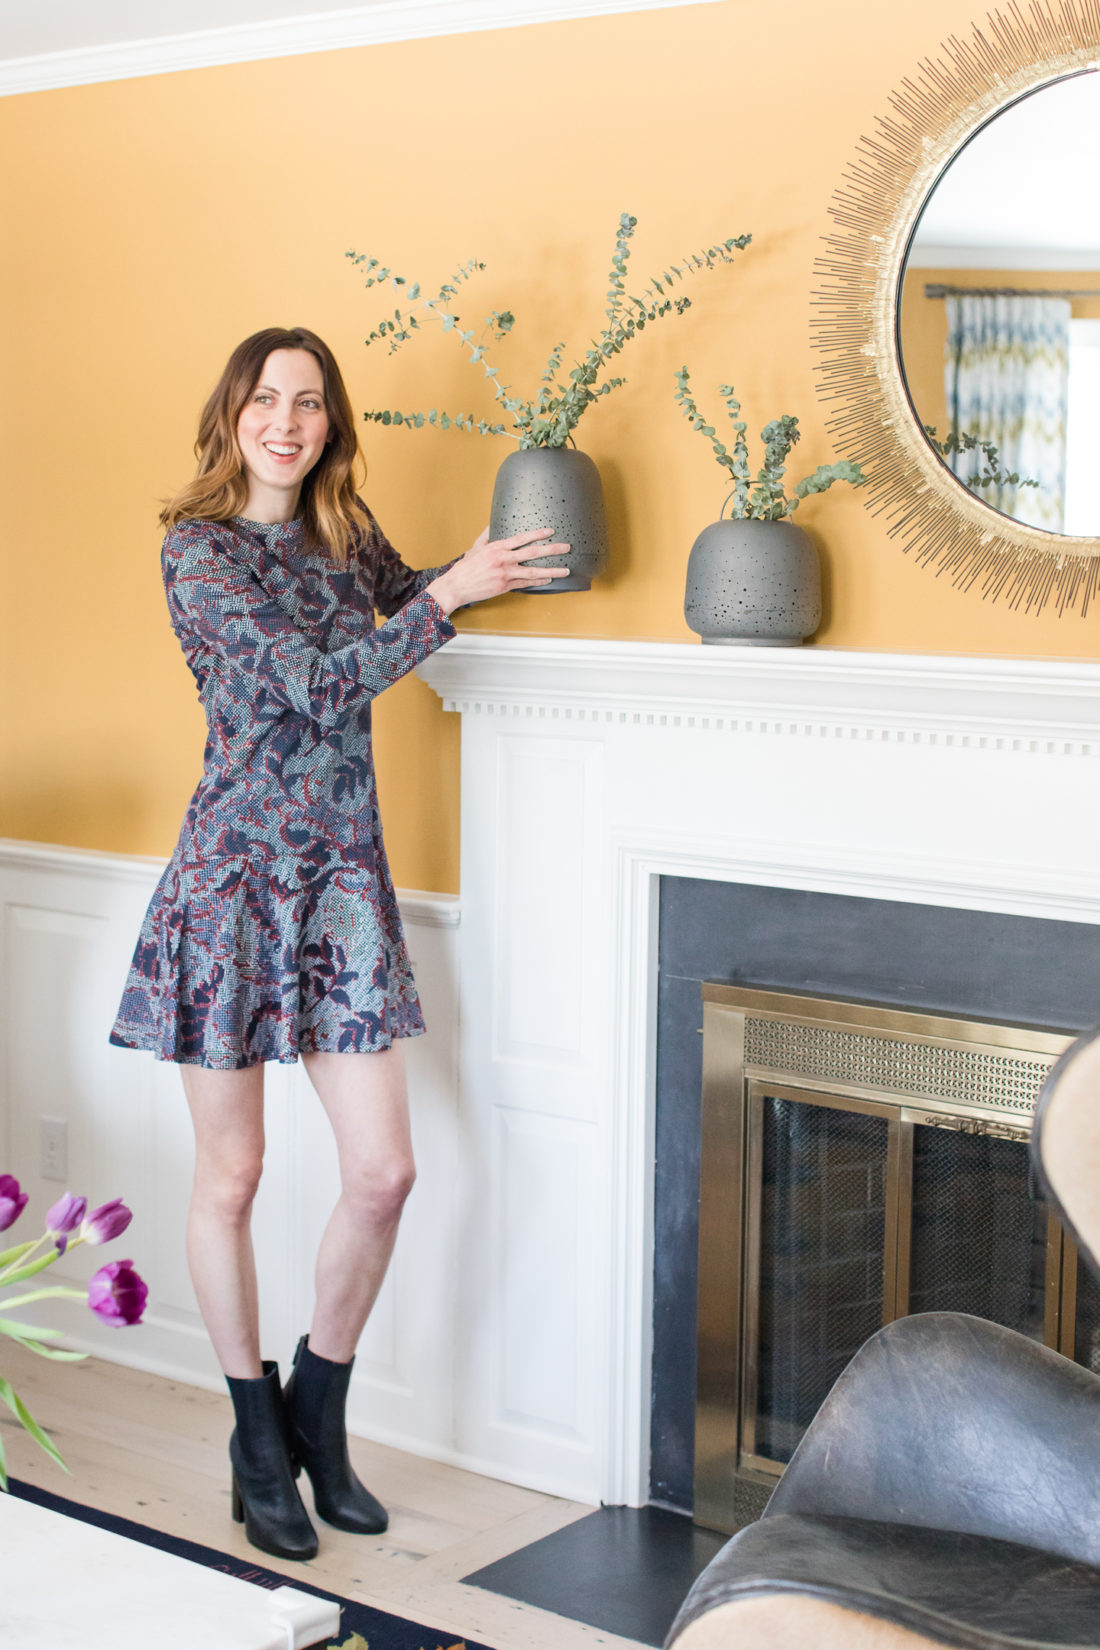 Eva Amurri Martino of lifestyle and motherhood blog Happily Eva After sets some decor on the mantle in the formal living room of her Connecticut home